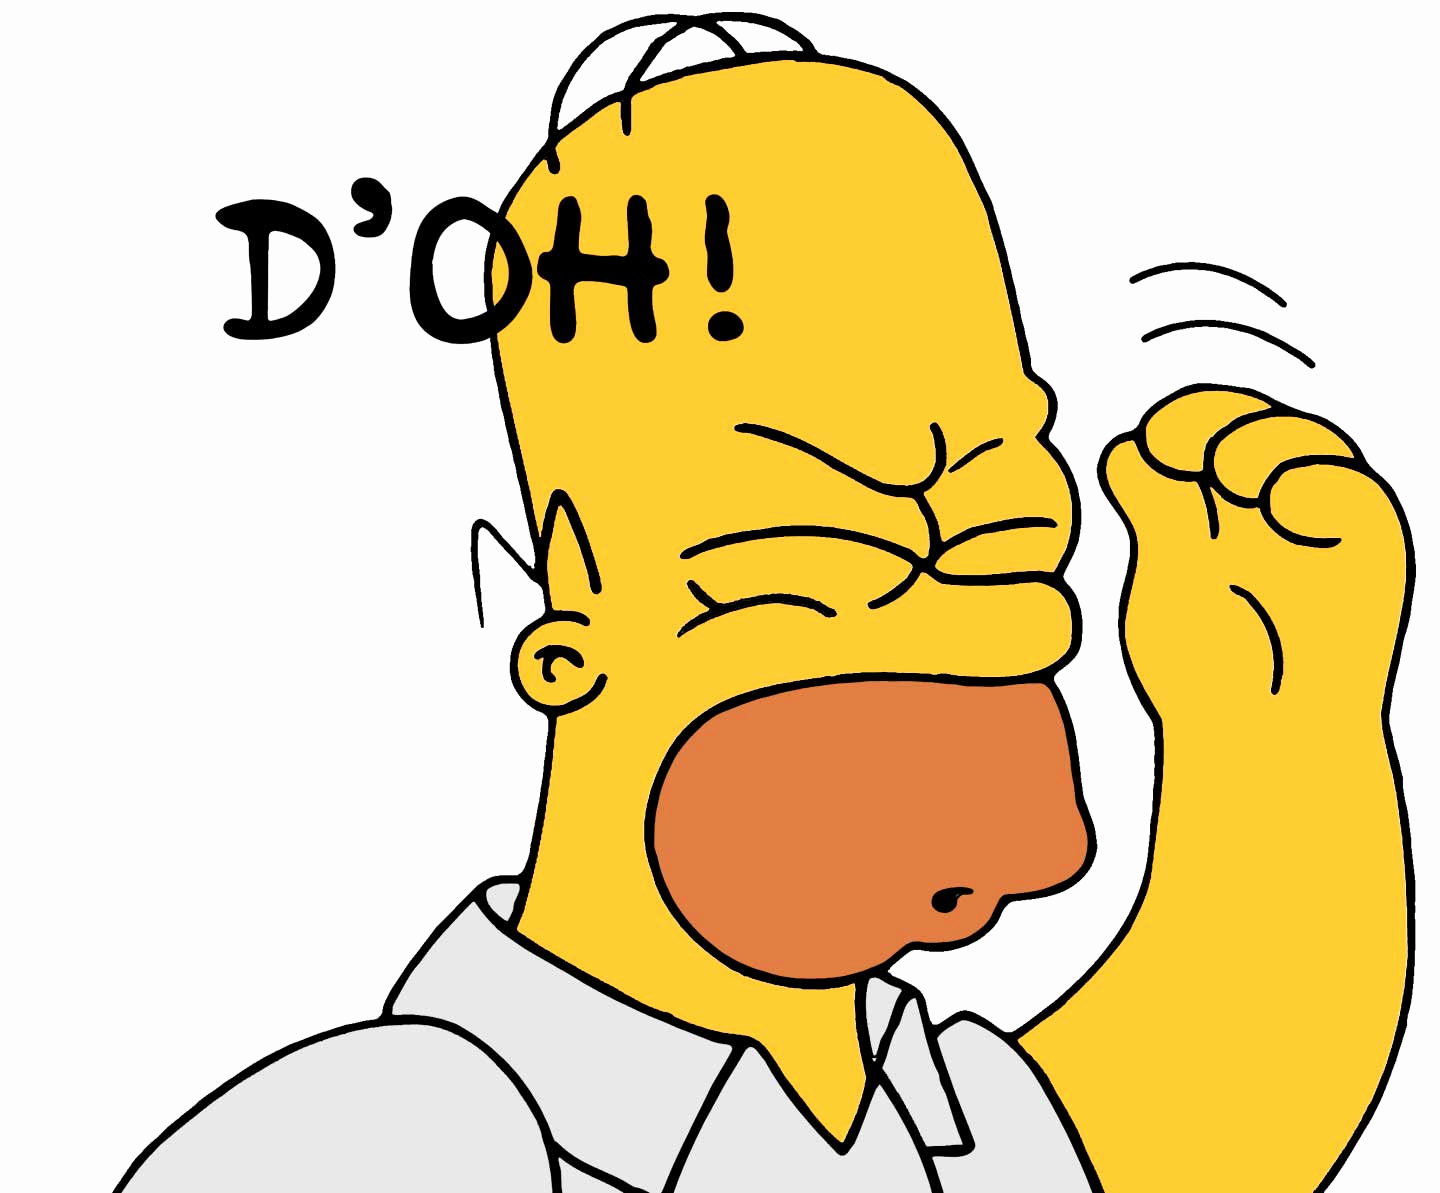 Doh clipart bart simpson. New homer mp